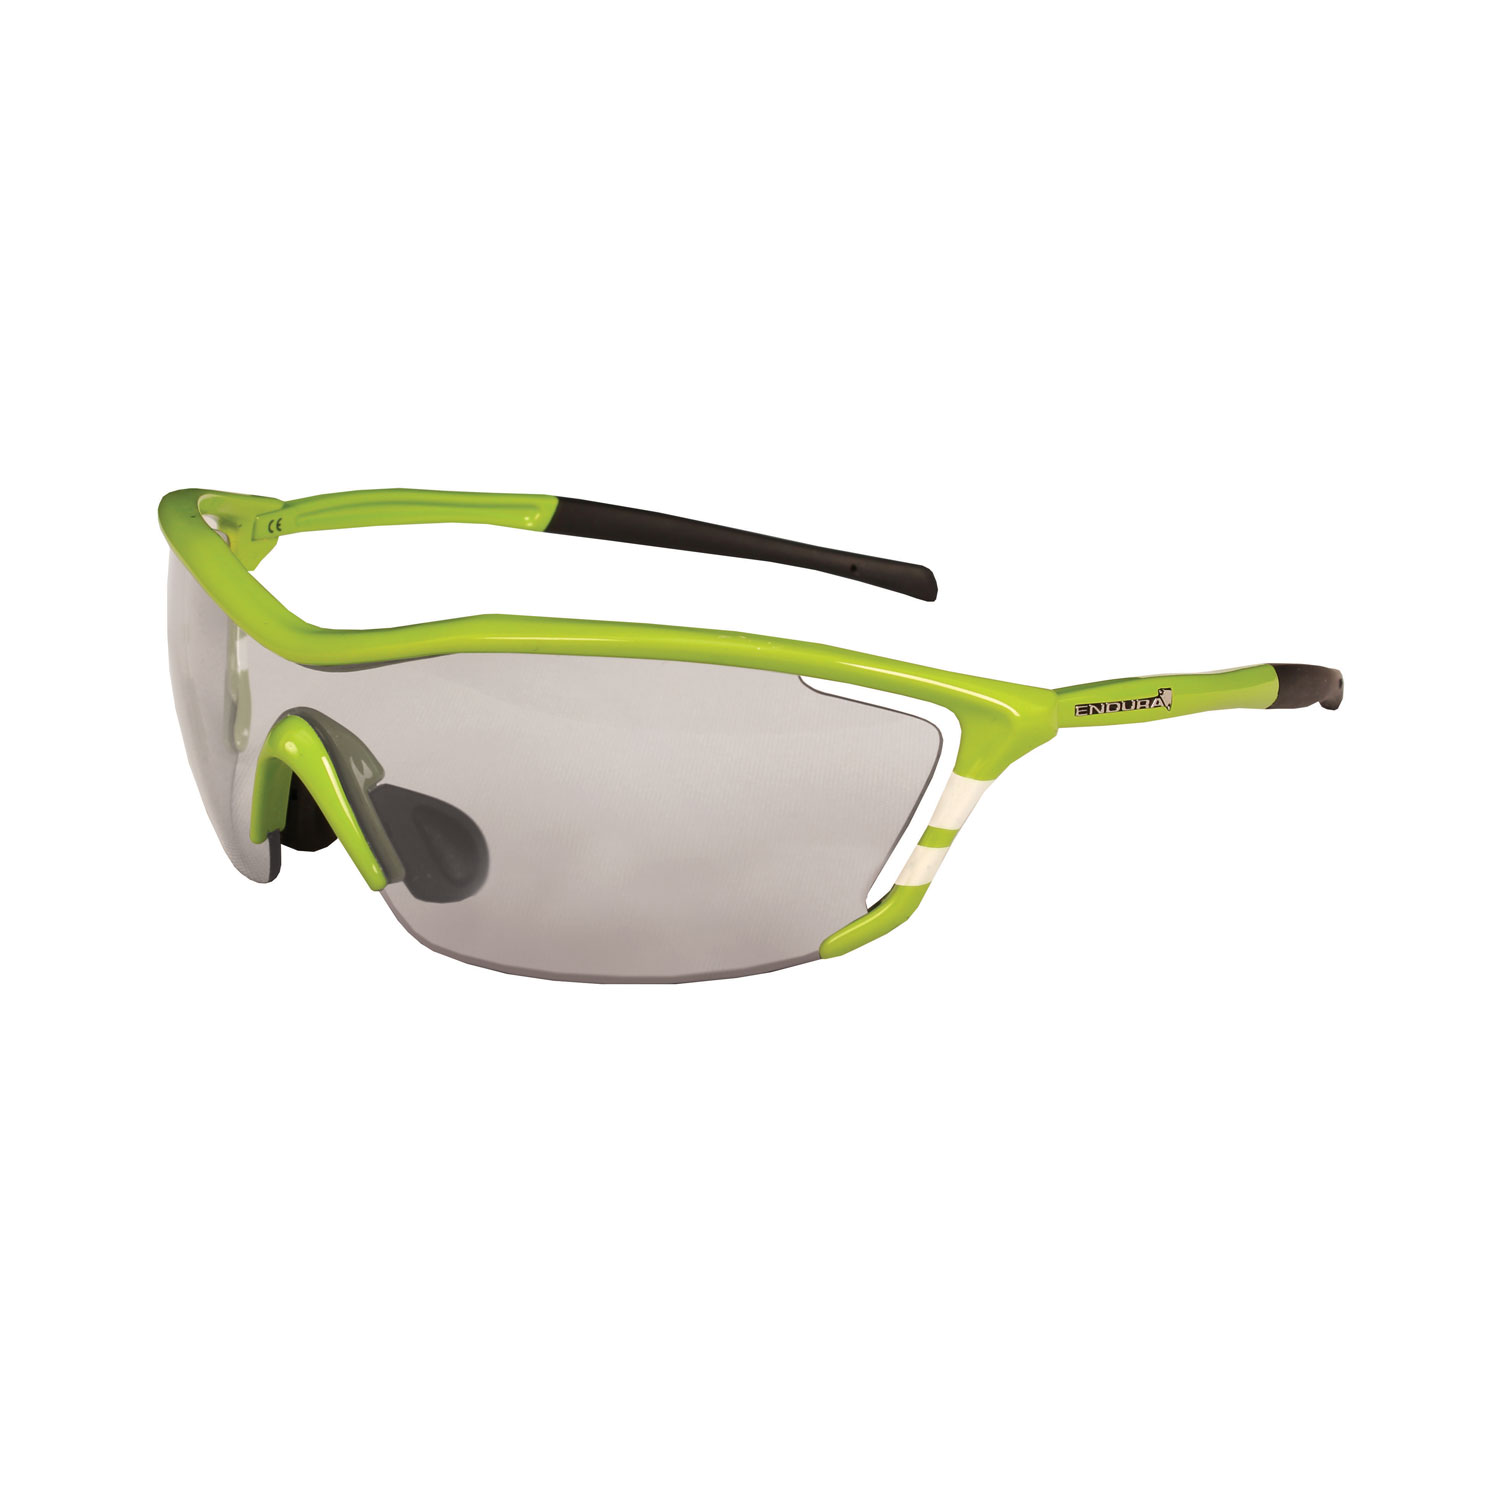 Pacu Glasses Lime Green